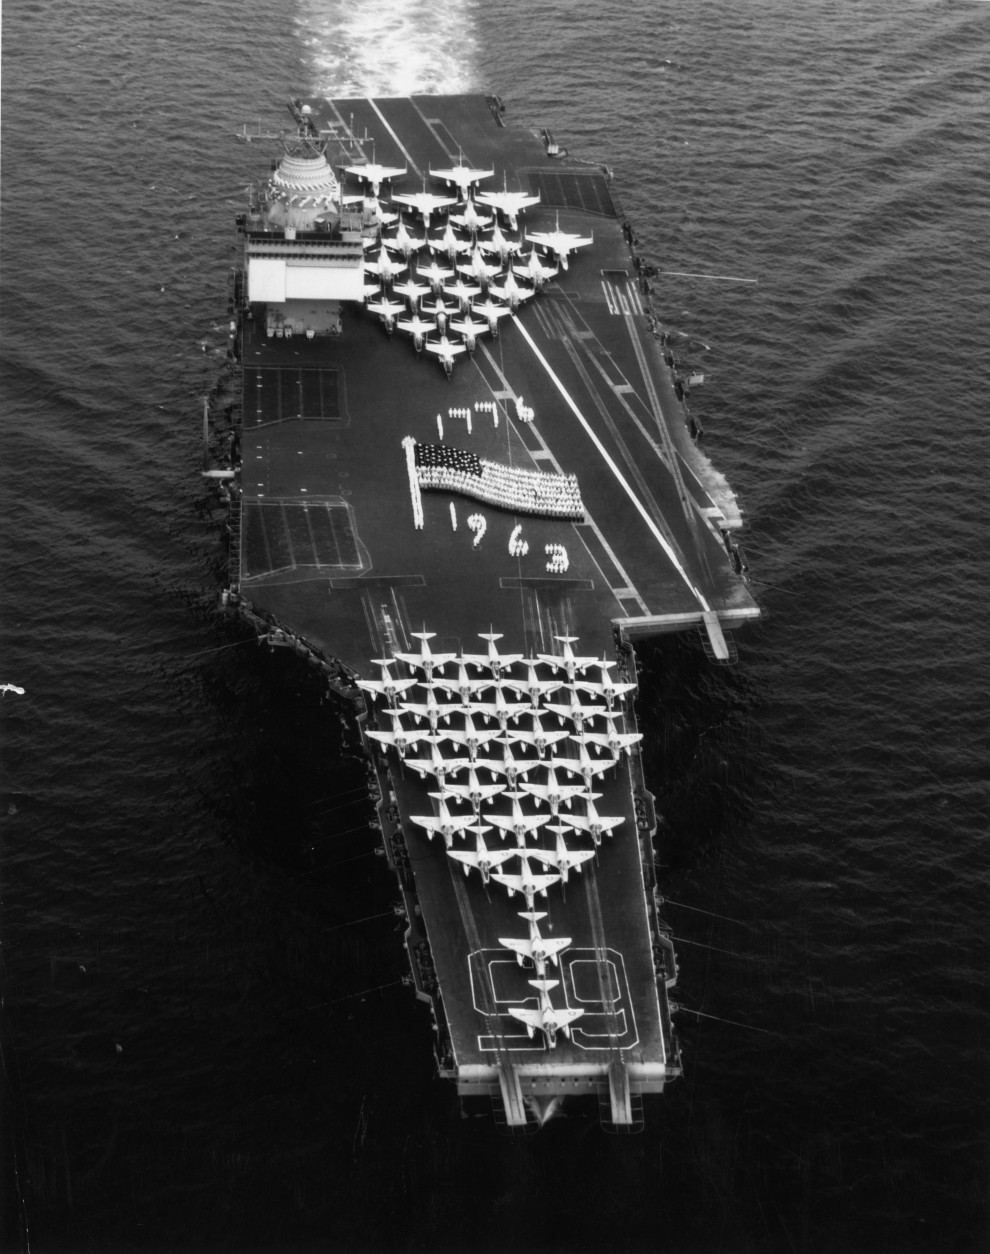 8th July 1963:  The nuclear powered aircraft carrier, USS Enterprise in the Mediterranean Sea.  (Photo by Keystone/Getty Images)